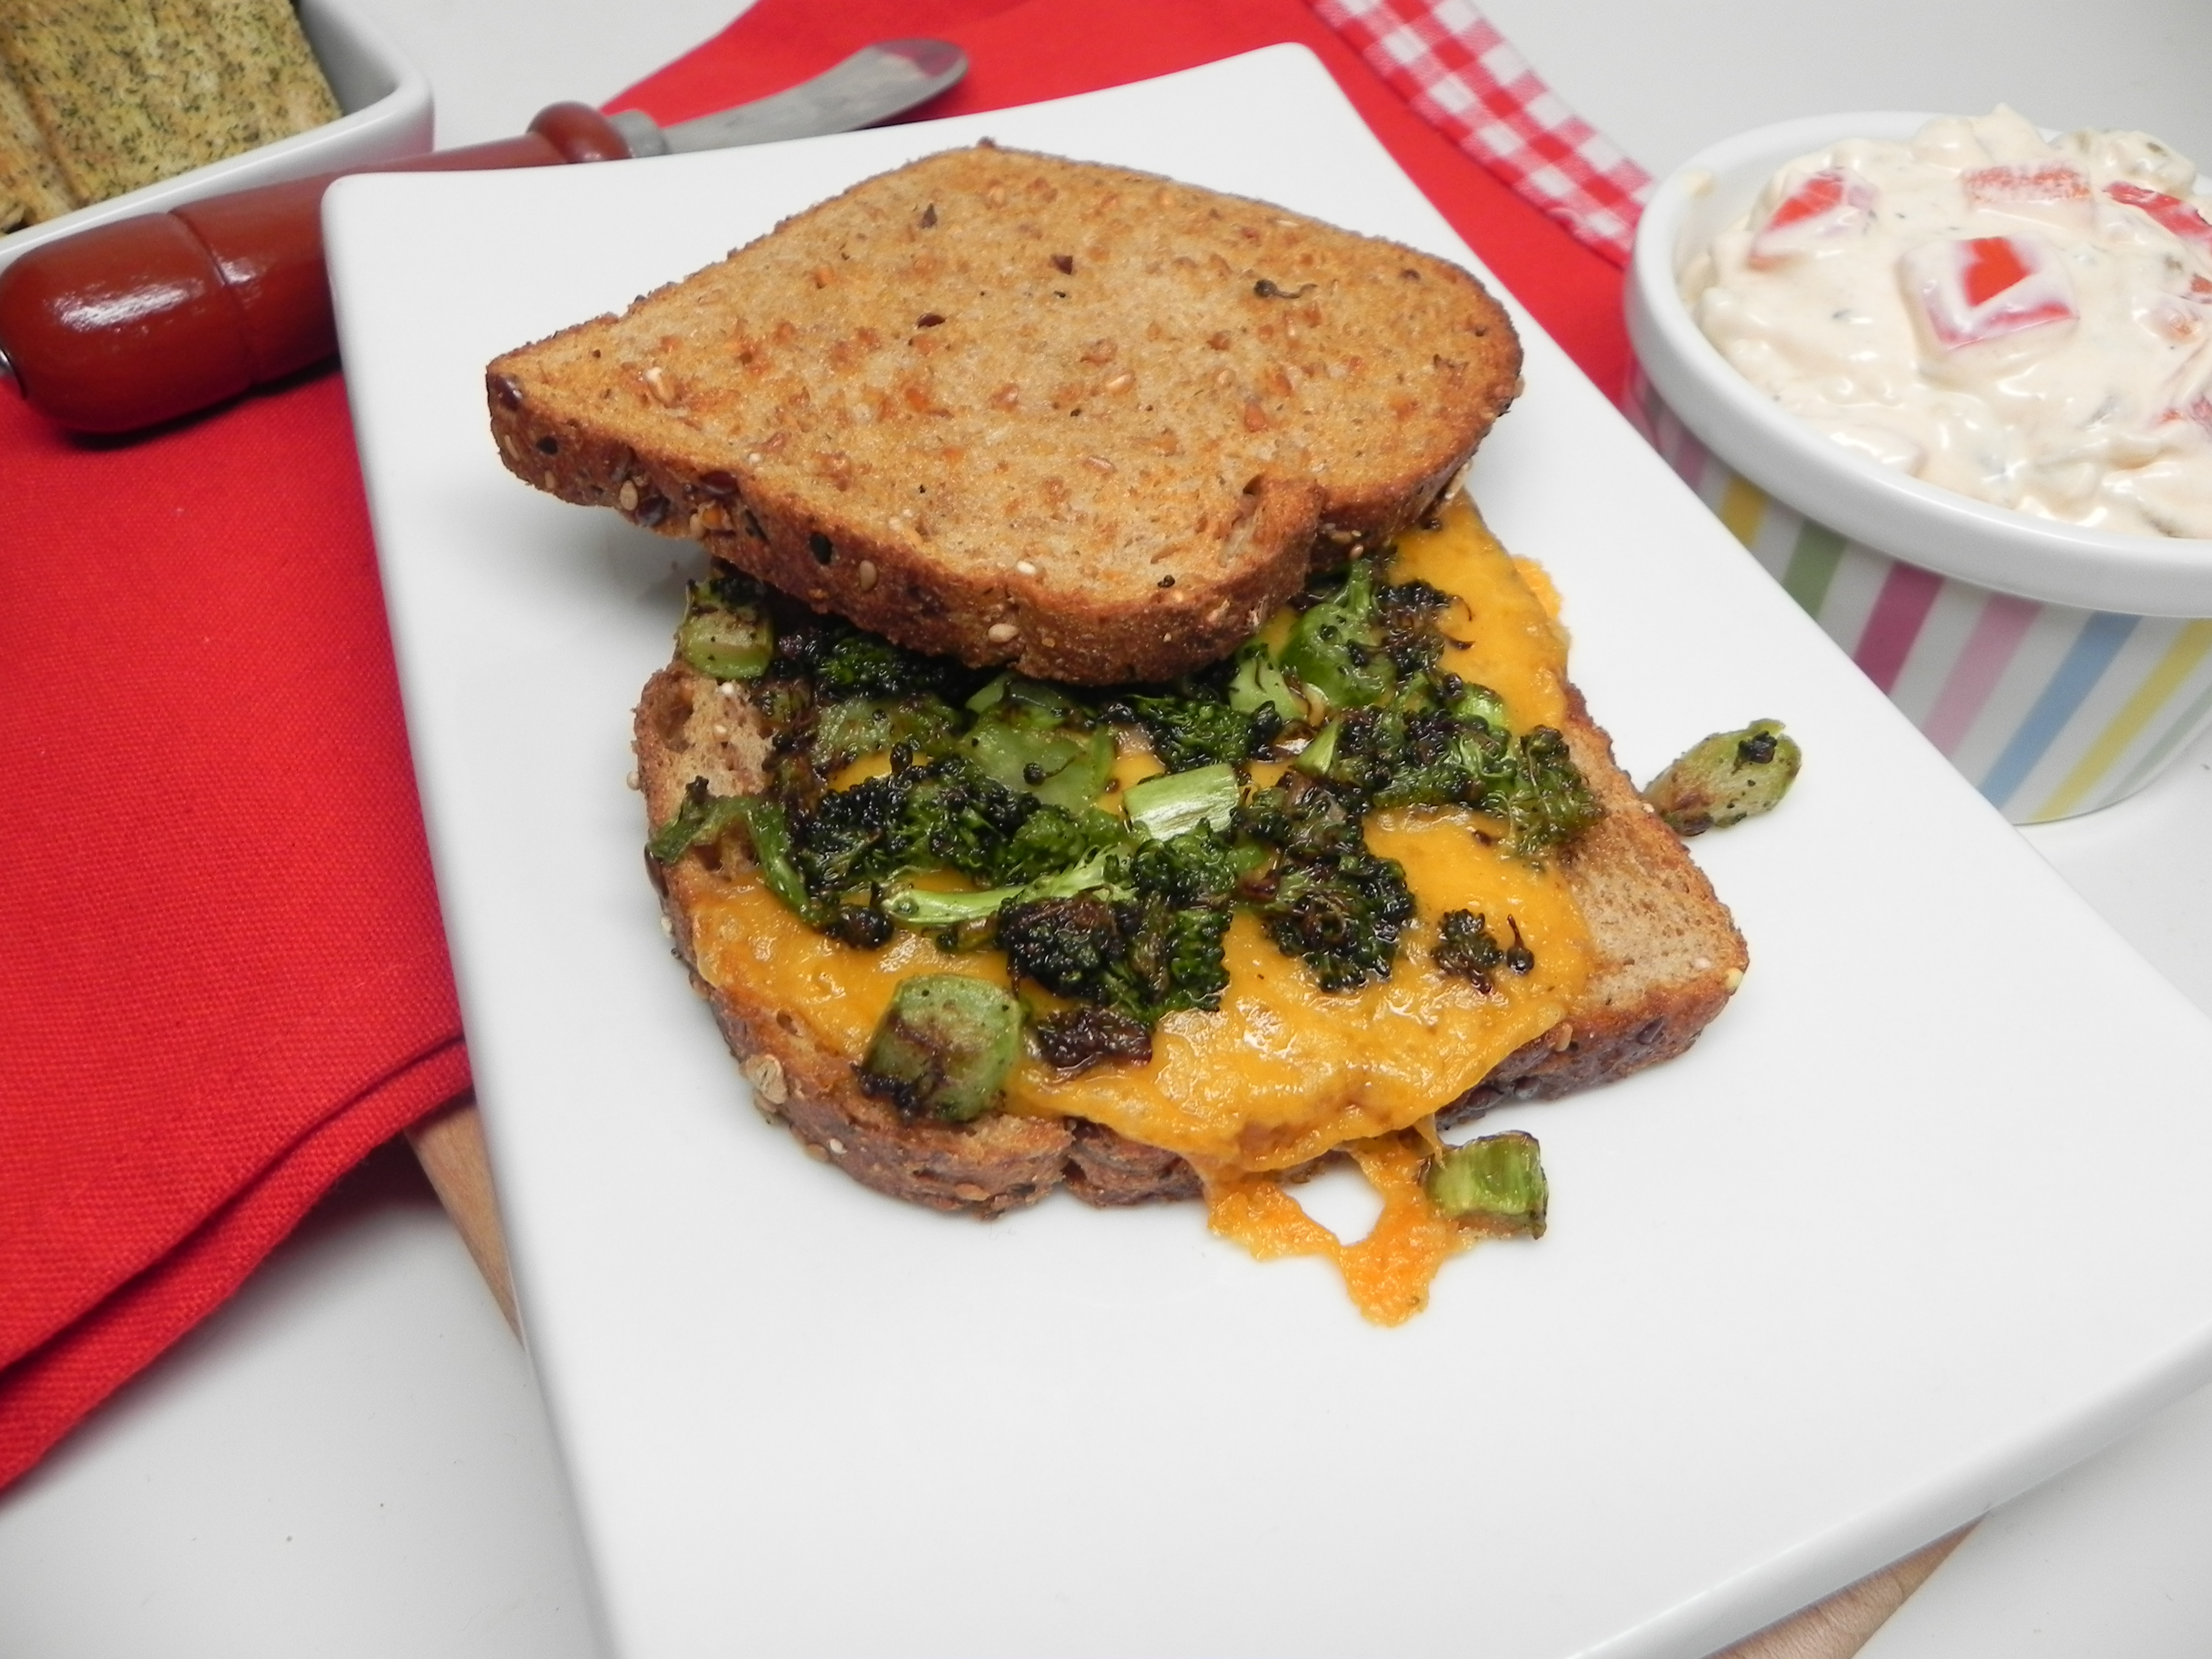 Grilled Broccoli and Cheese Sandwich